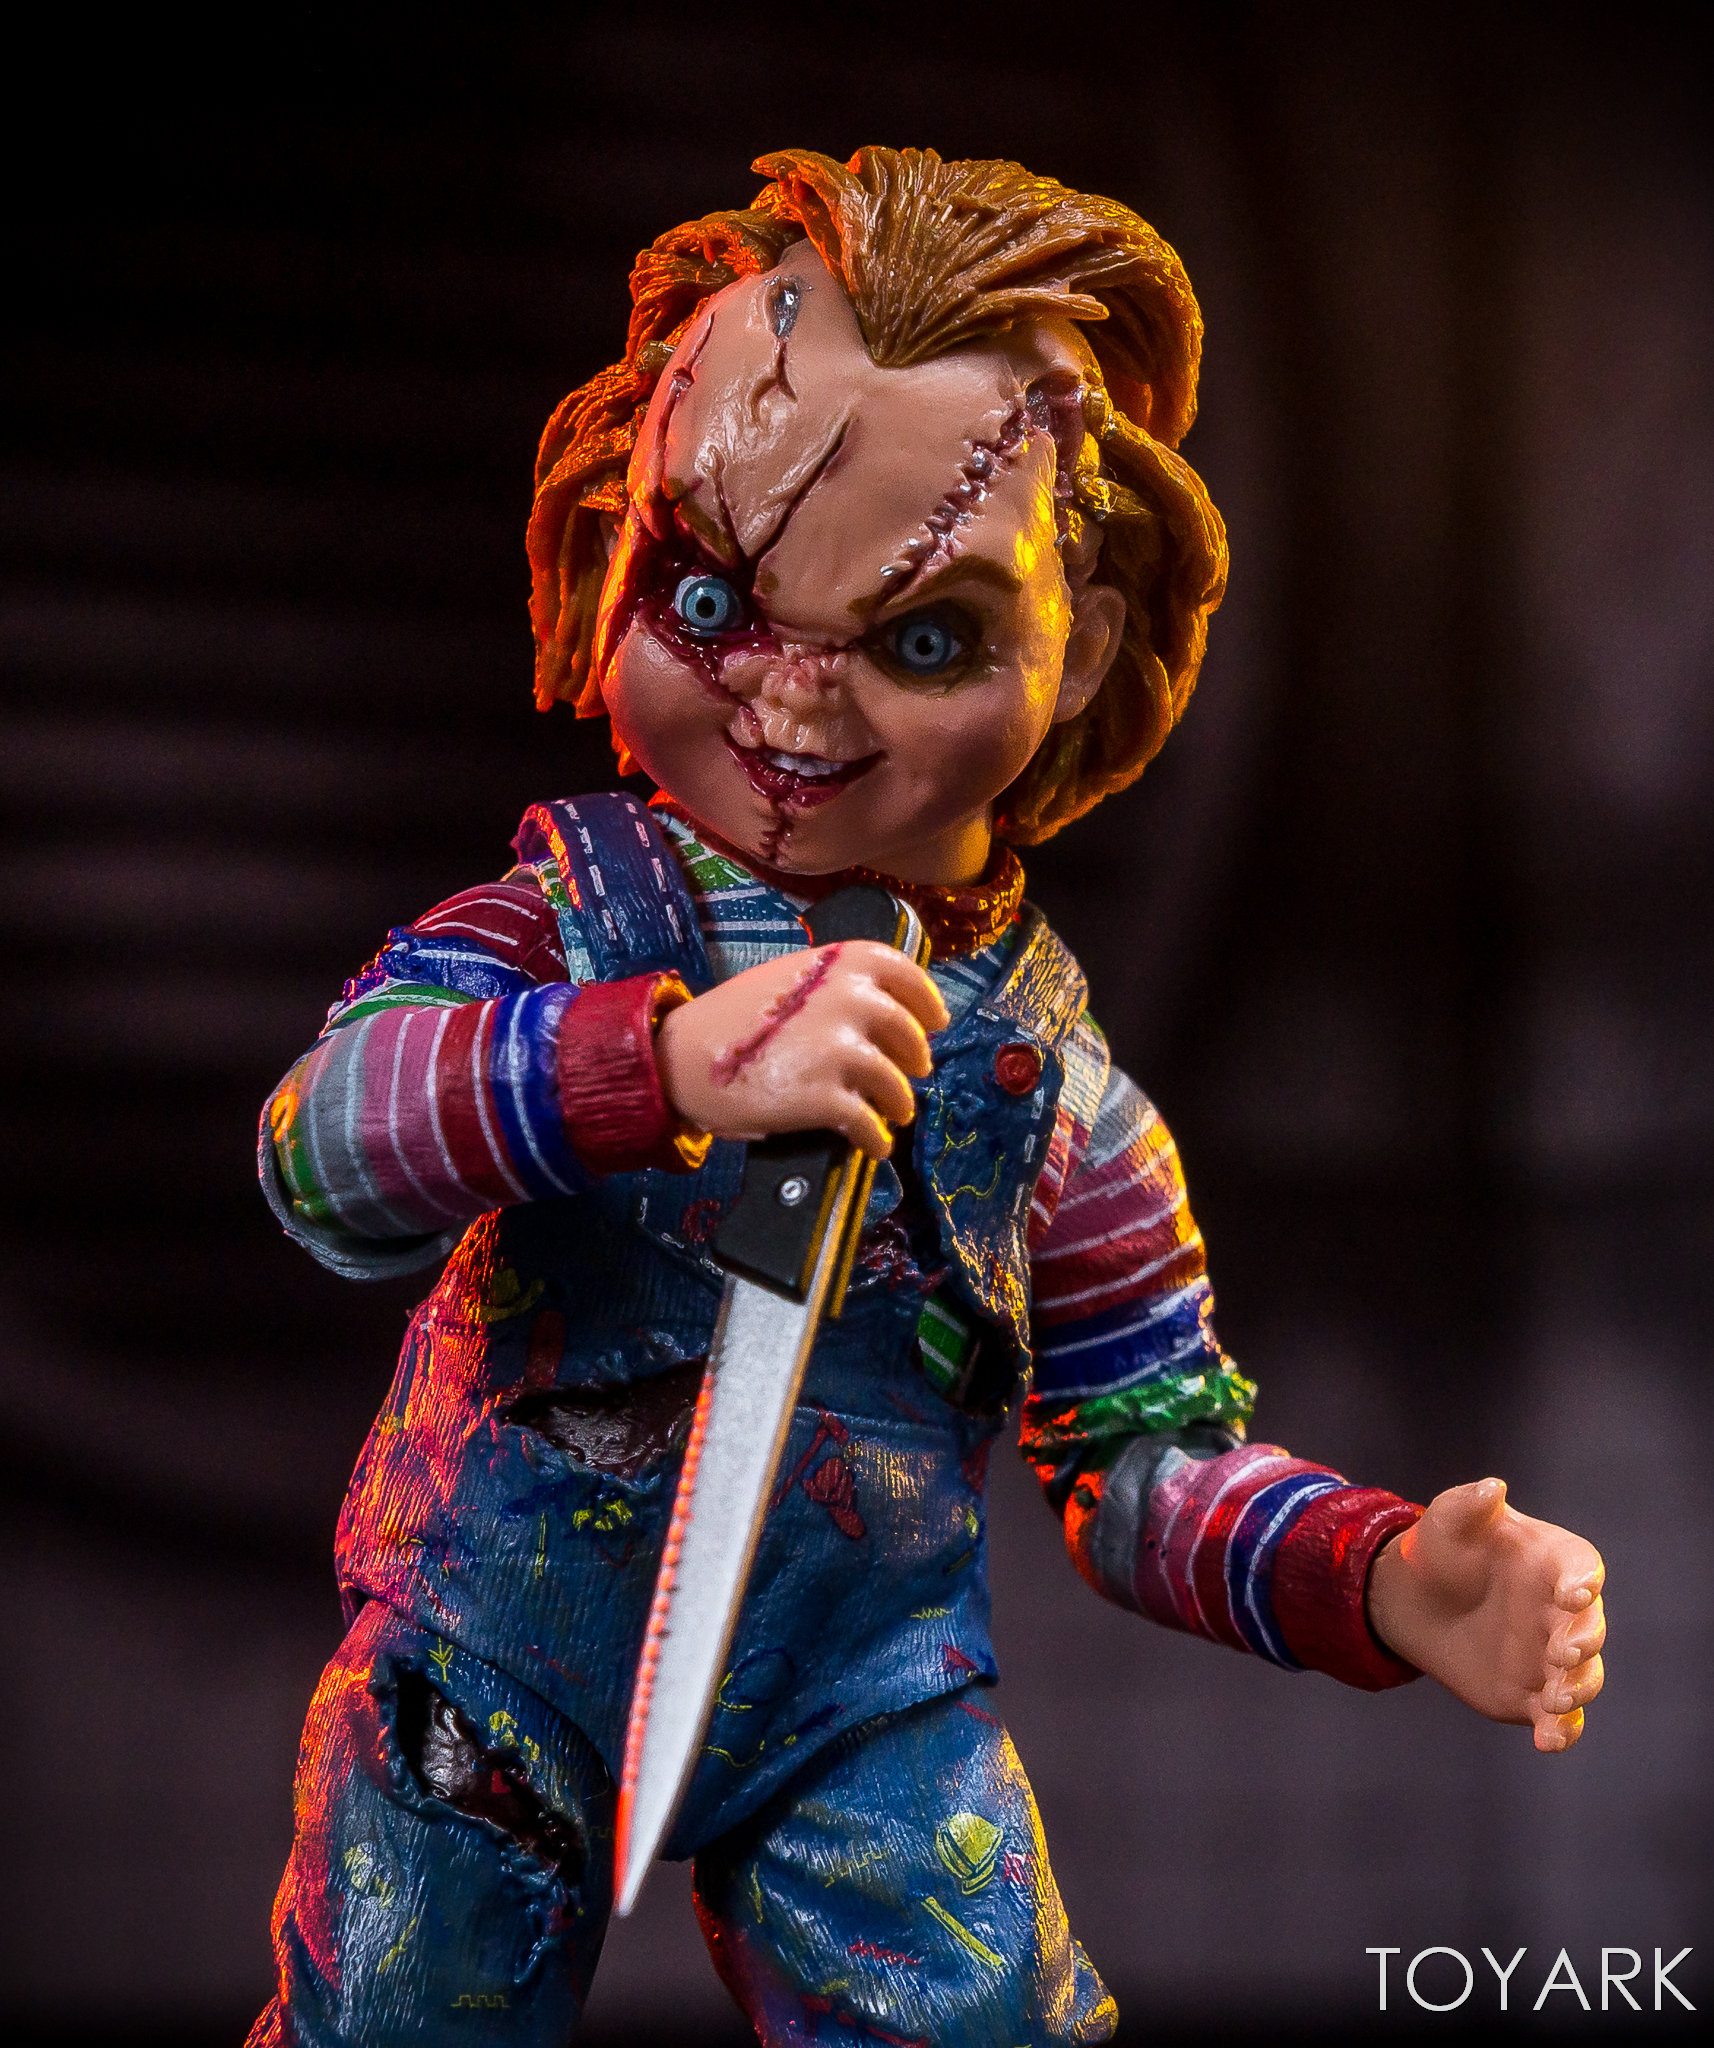 https://news.toyark.com/wp-content/uploads/sites/4/2019/01/Bride-of-Chucky-NECA-Set-032.jpg